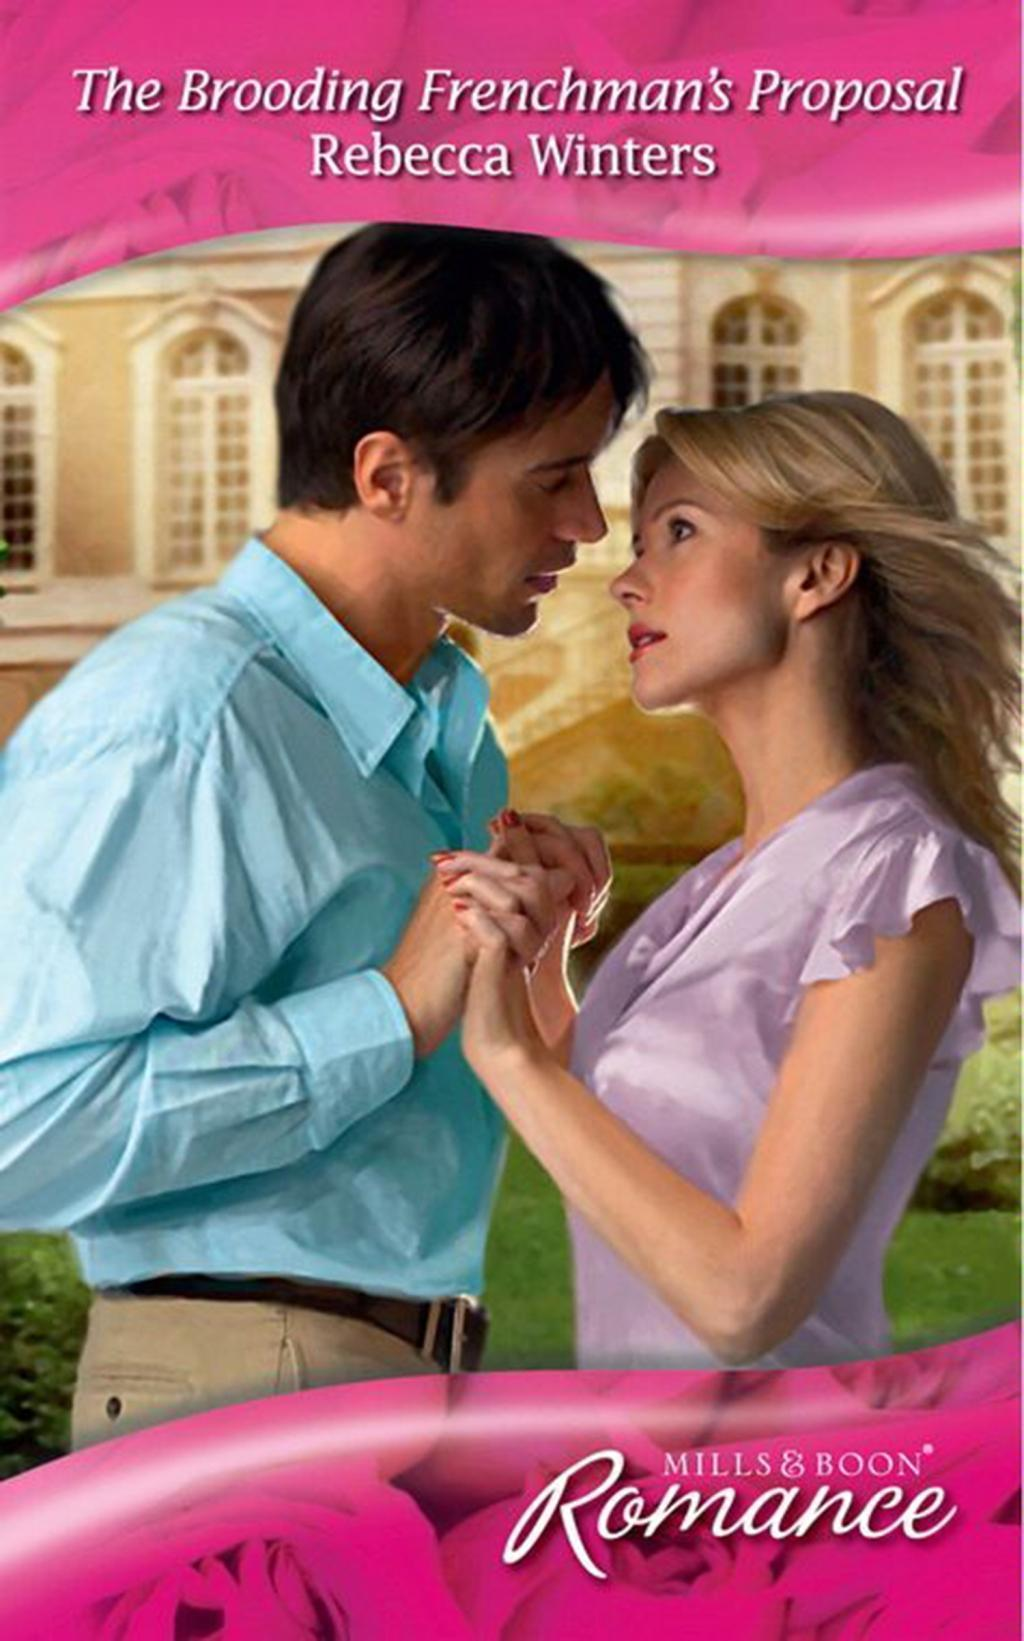 The Brooding Frenchman's Proposal (Mills & Boon Romance)